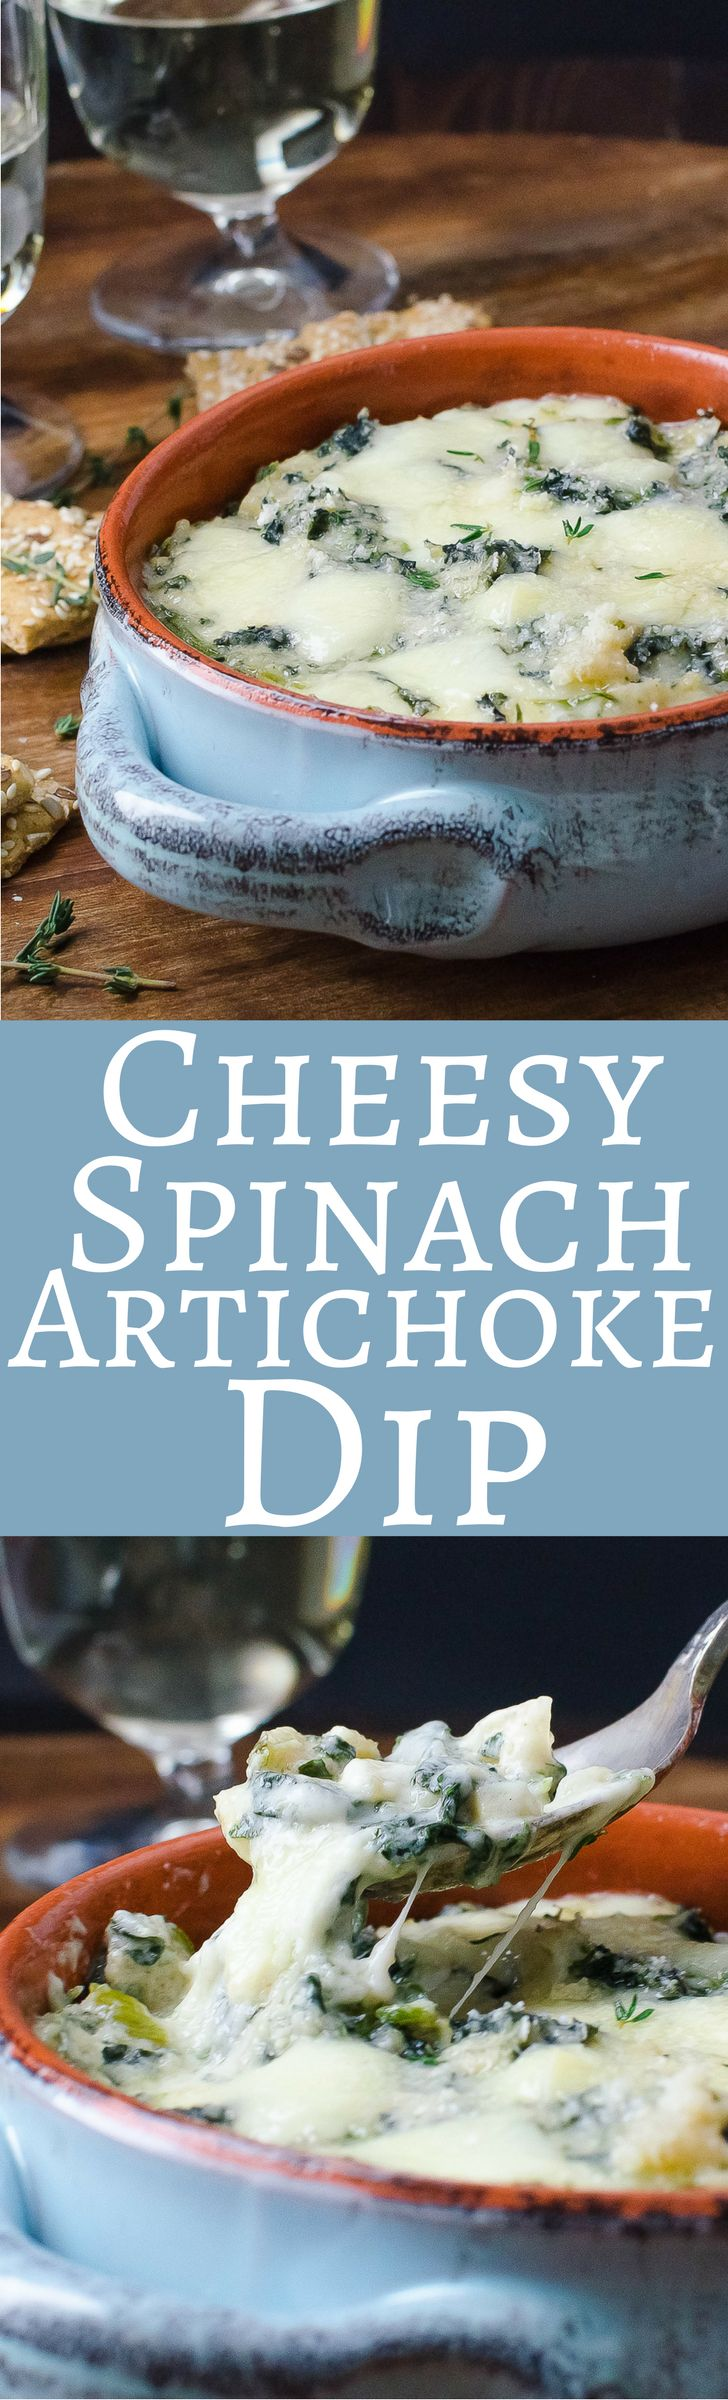 If you're looking for Super Bowl party ideas, this recipe for spinach dip with artichokes and gooey, melted cheese delivers.